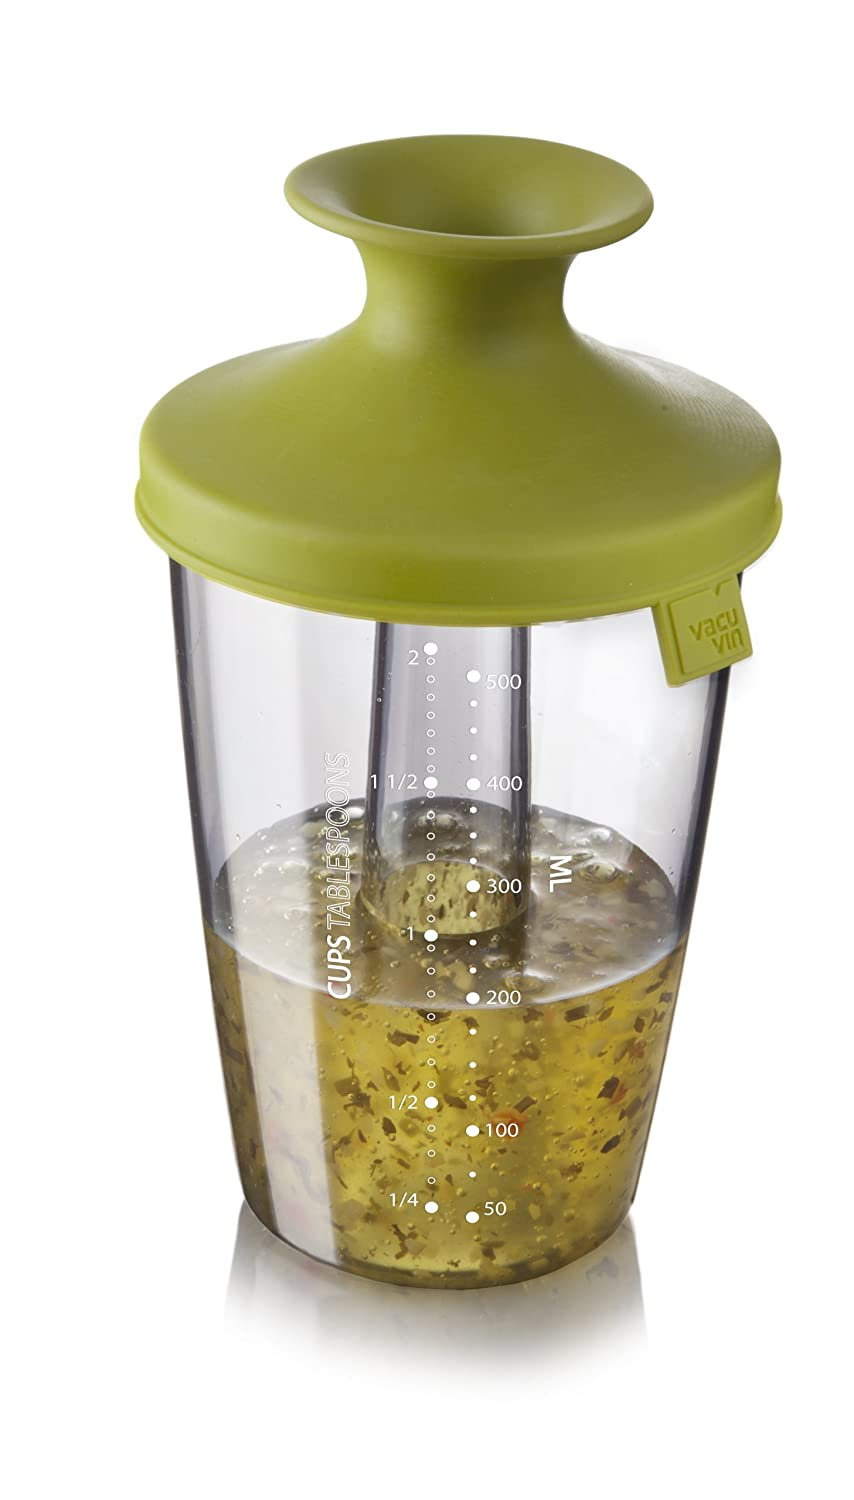 Vacu Vin 2833650 PopSome Flavour Dressing and Marinade Shaker, 21-Ounce, Green Vacu Vin Inc.